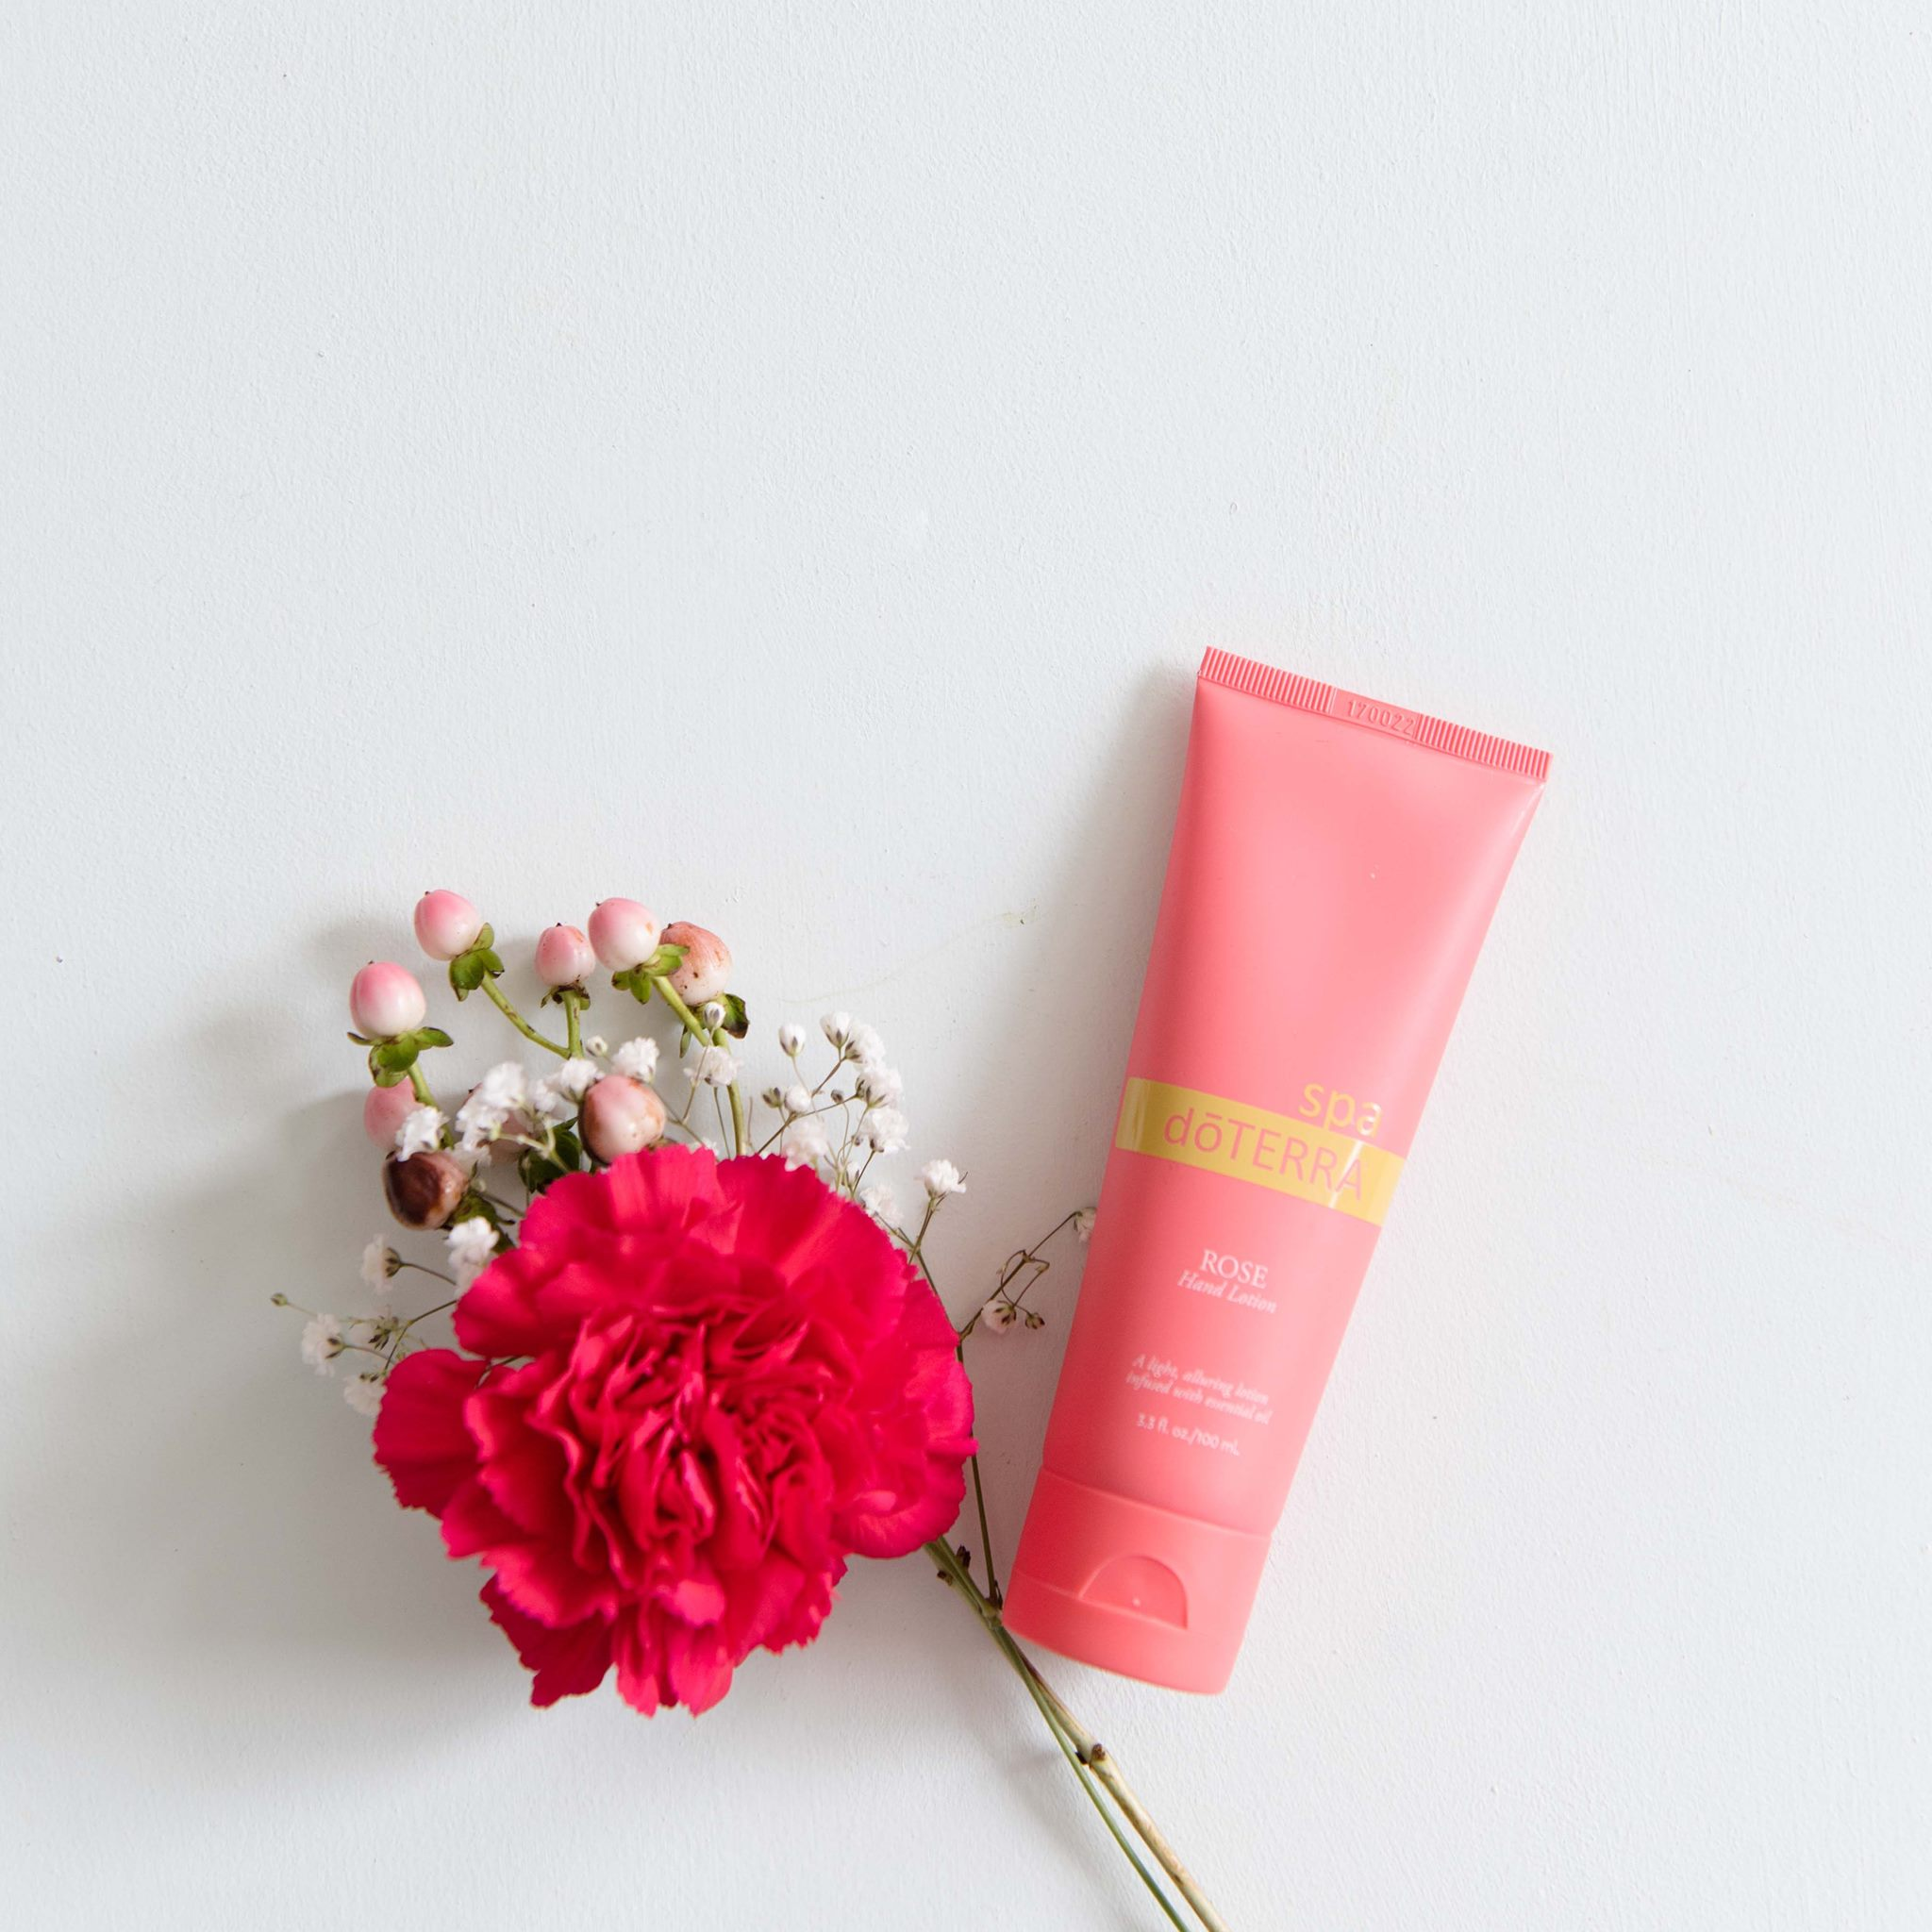 doTERRA® SPA Rose Hand Lotion